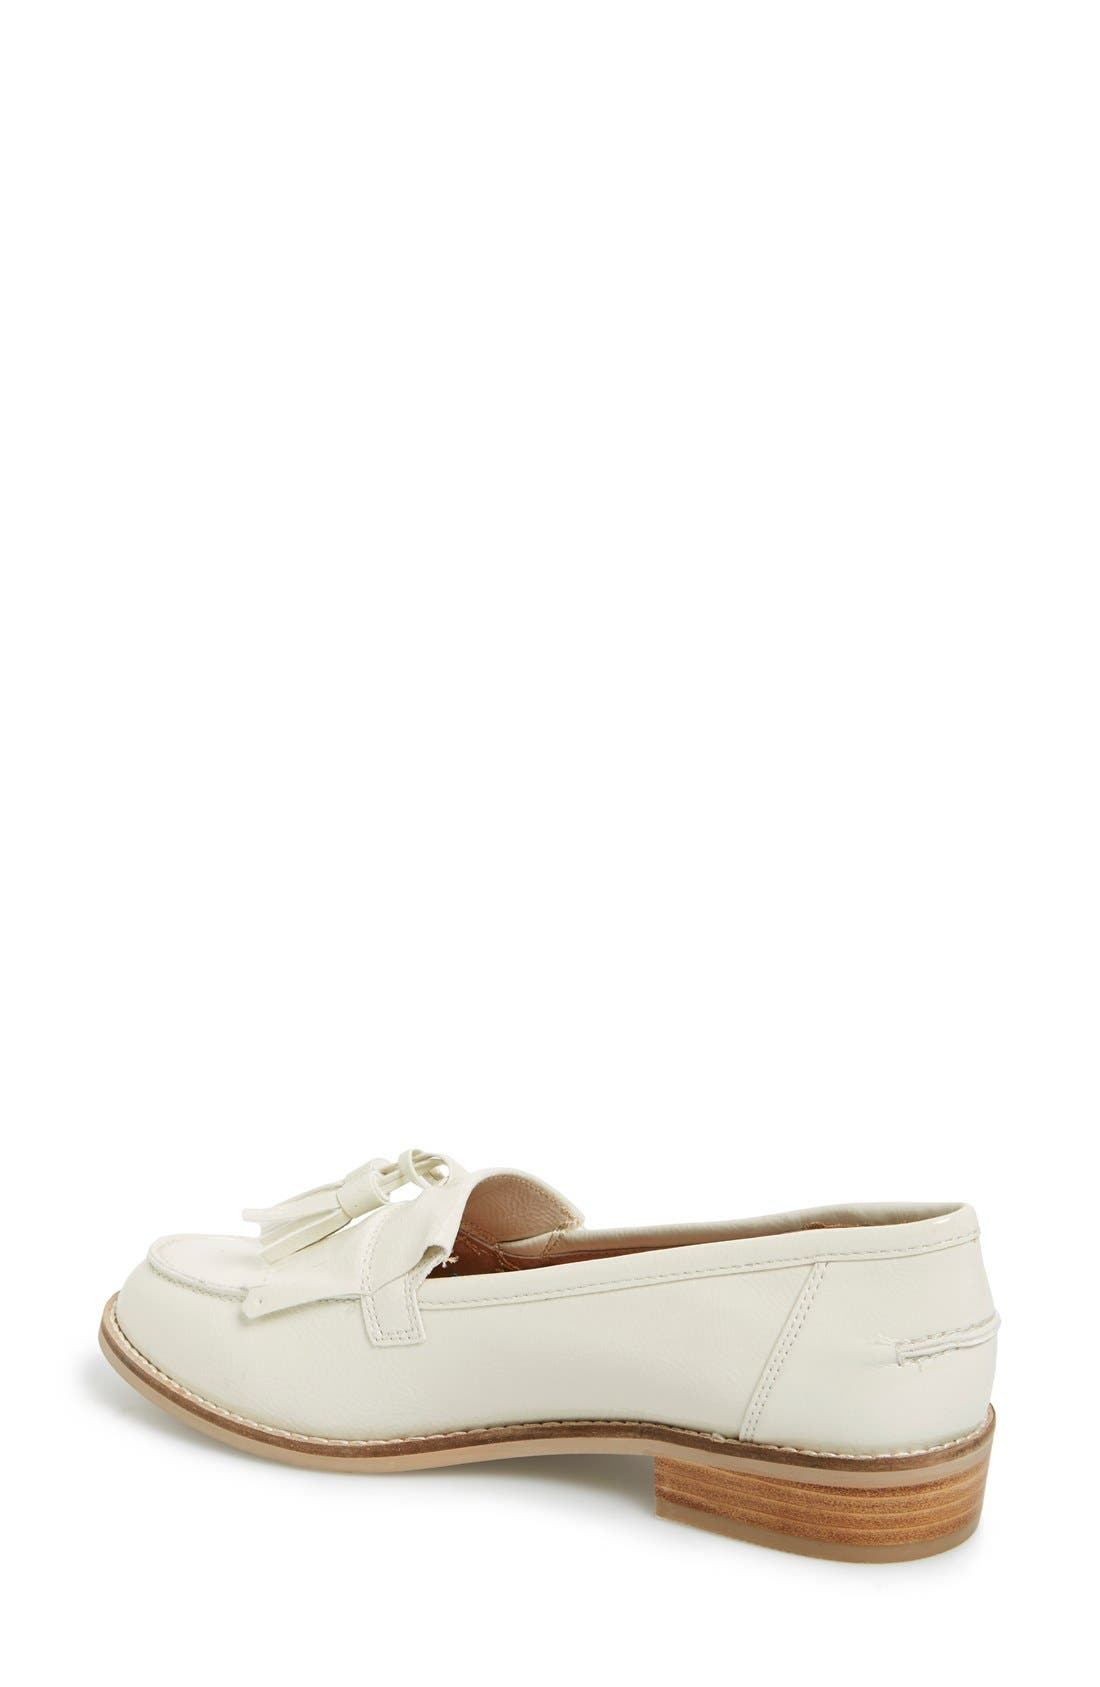 Alternate Image 2  - Steve Madden 'Meela' Loafer (Women)